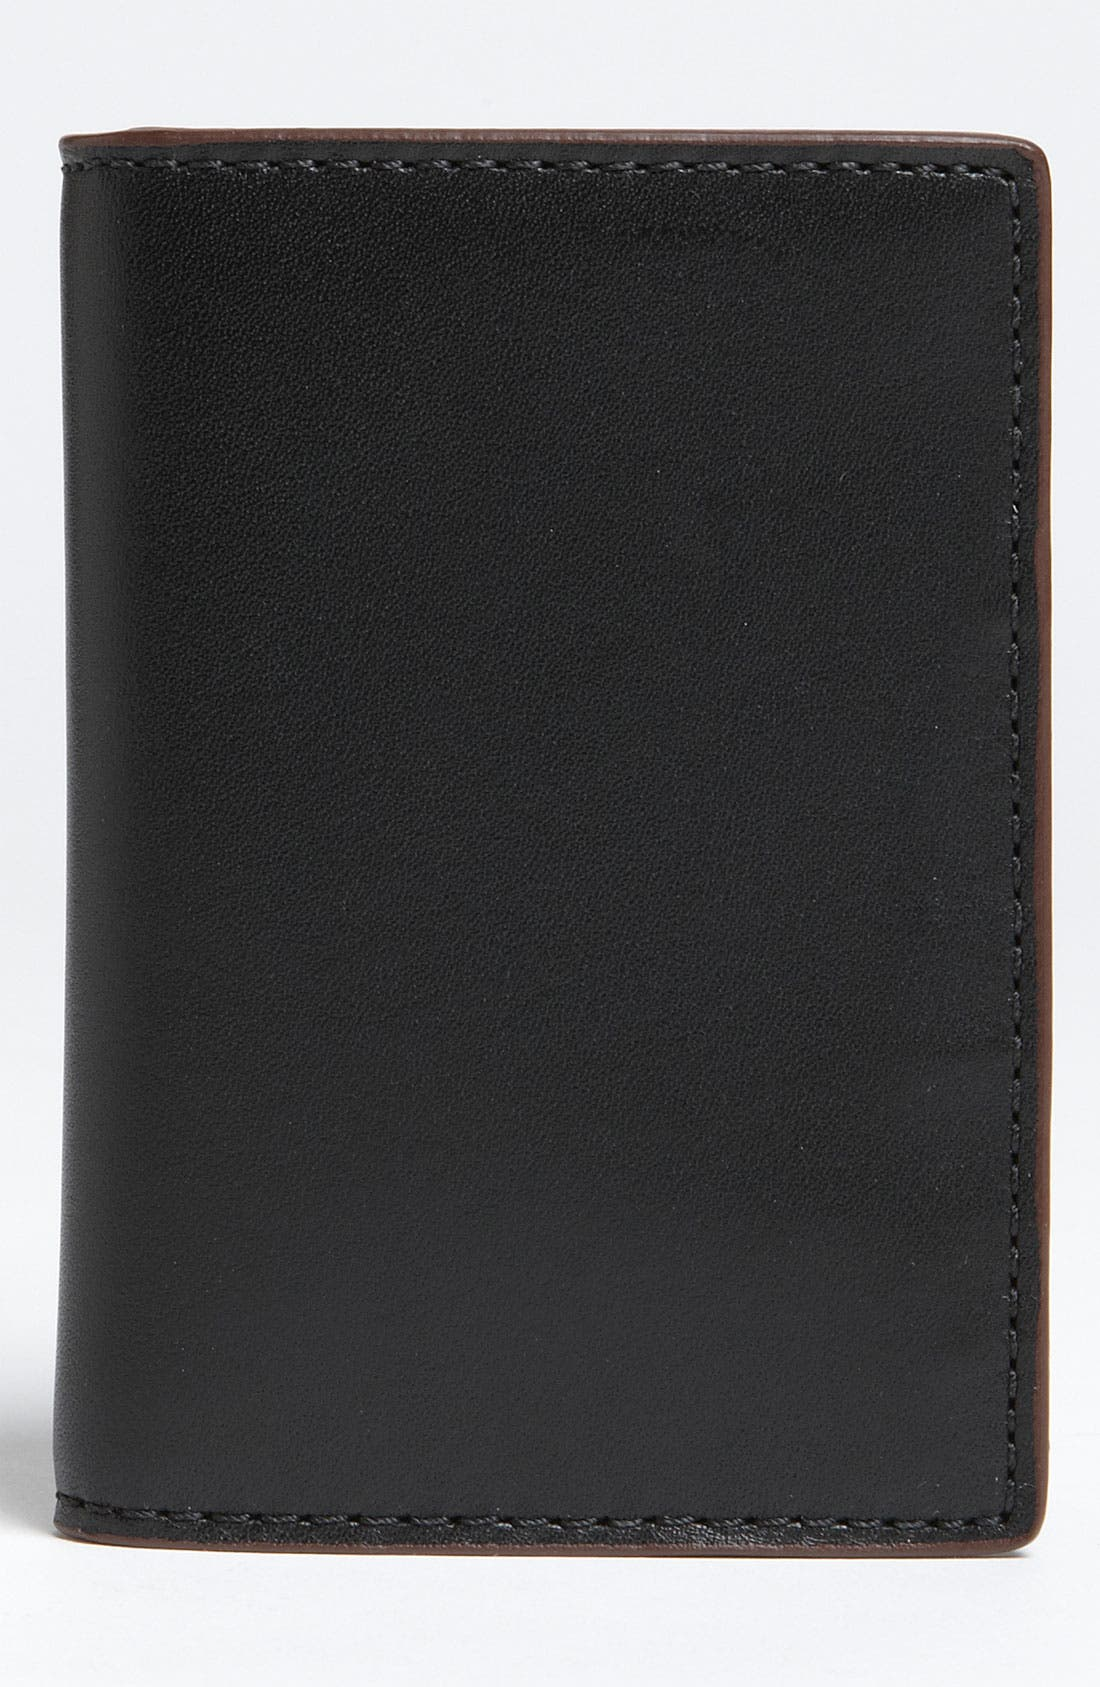 Main Image - Jack Spade 'Vertical Flap' Mill Leather Wallet